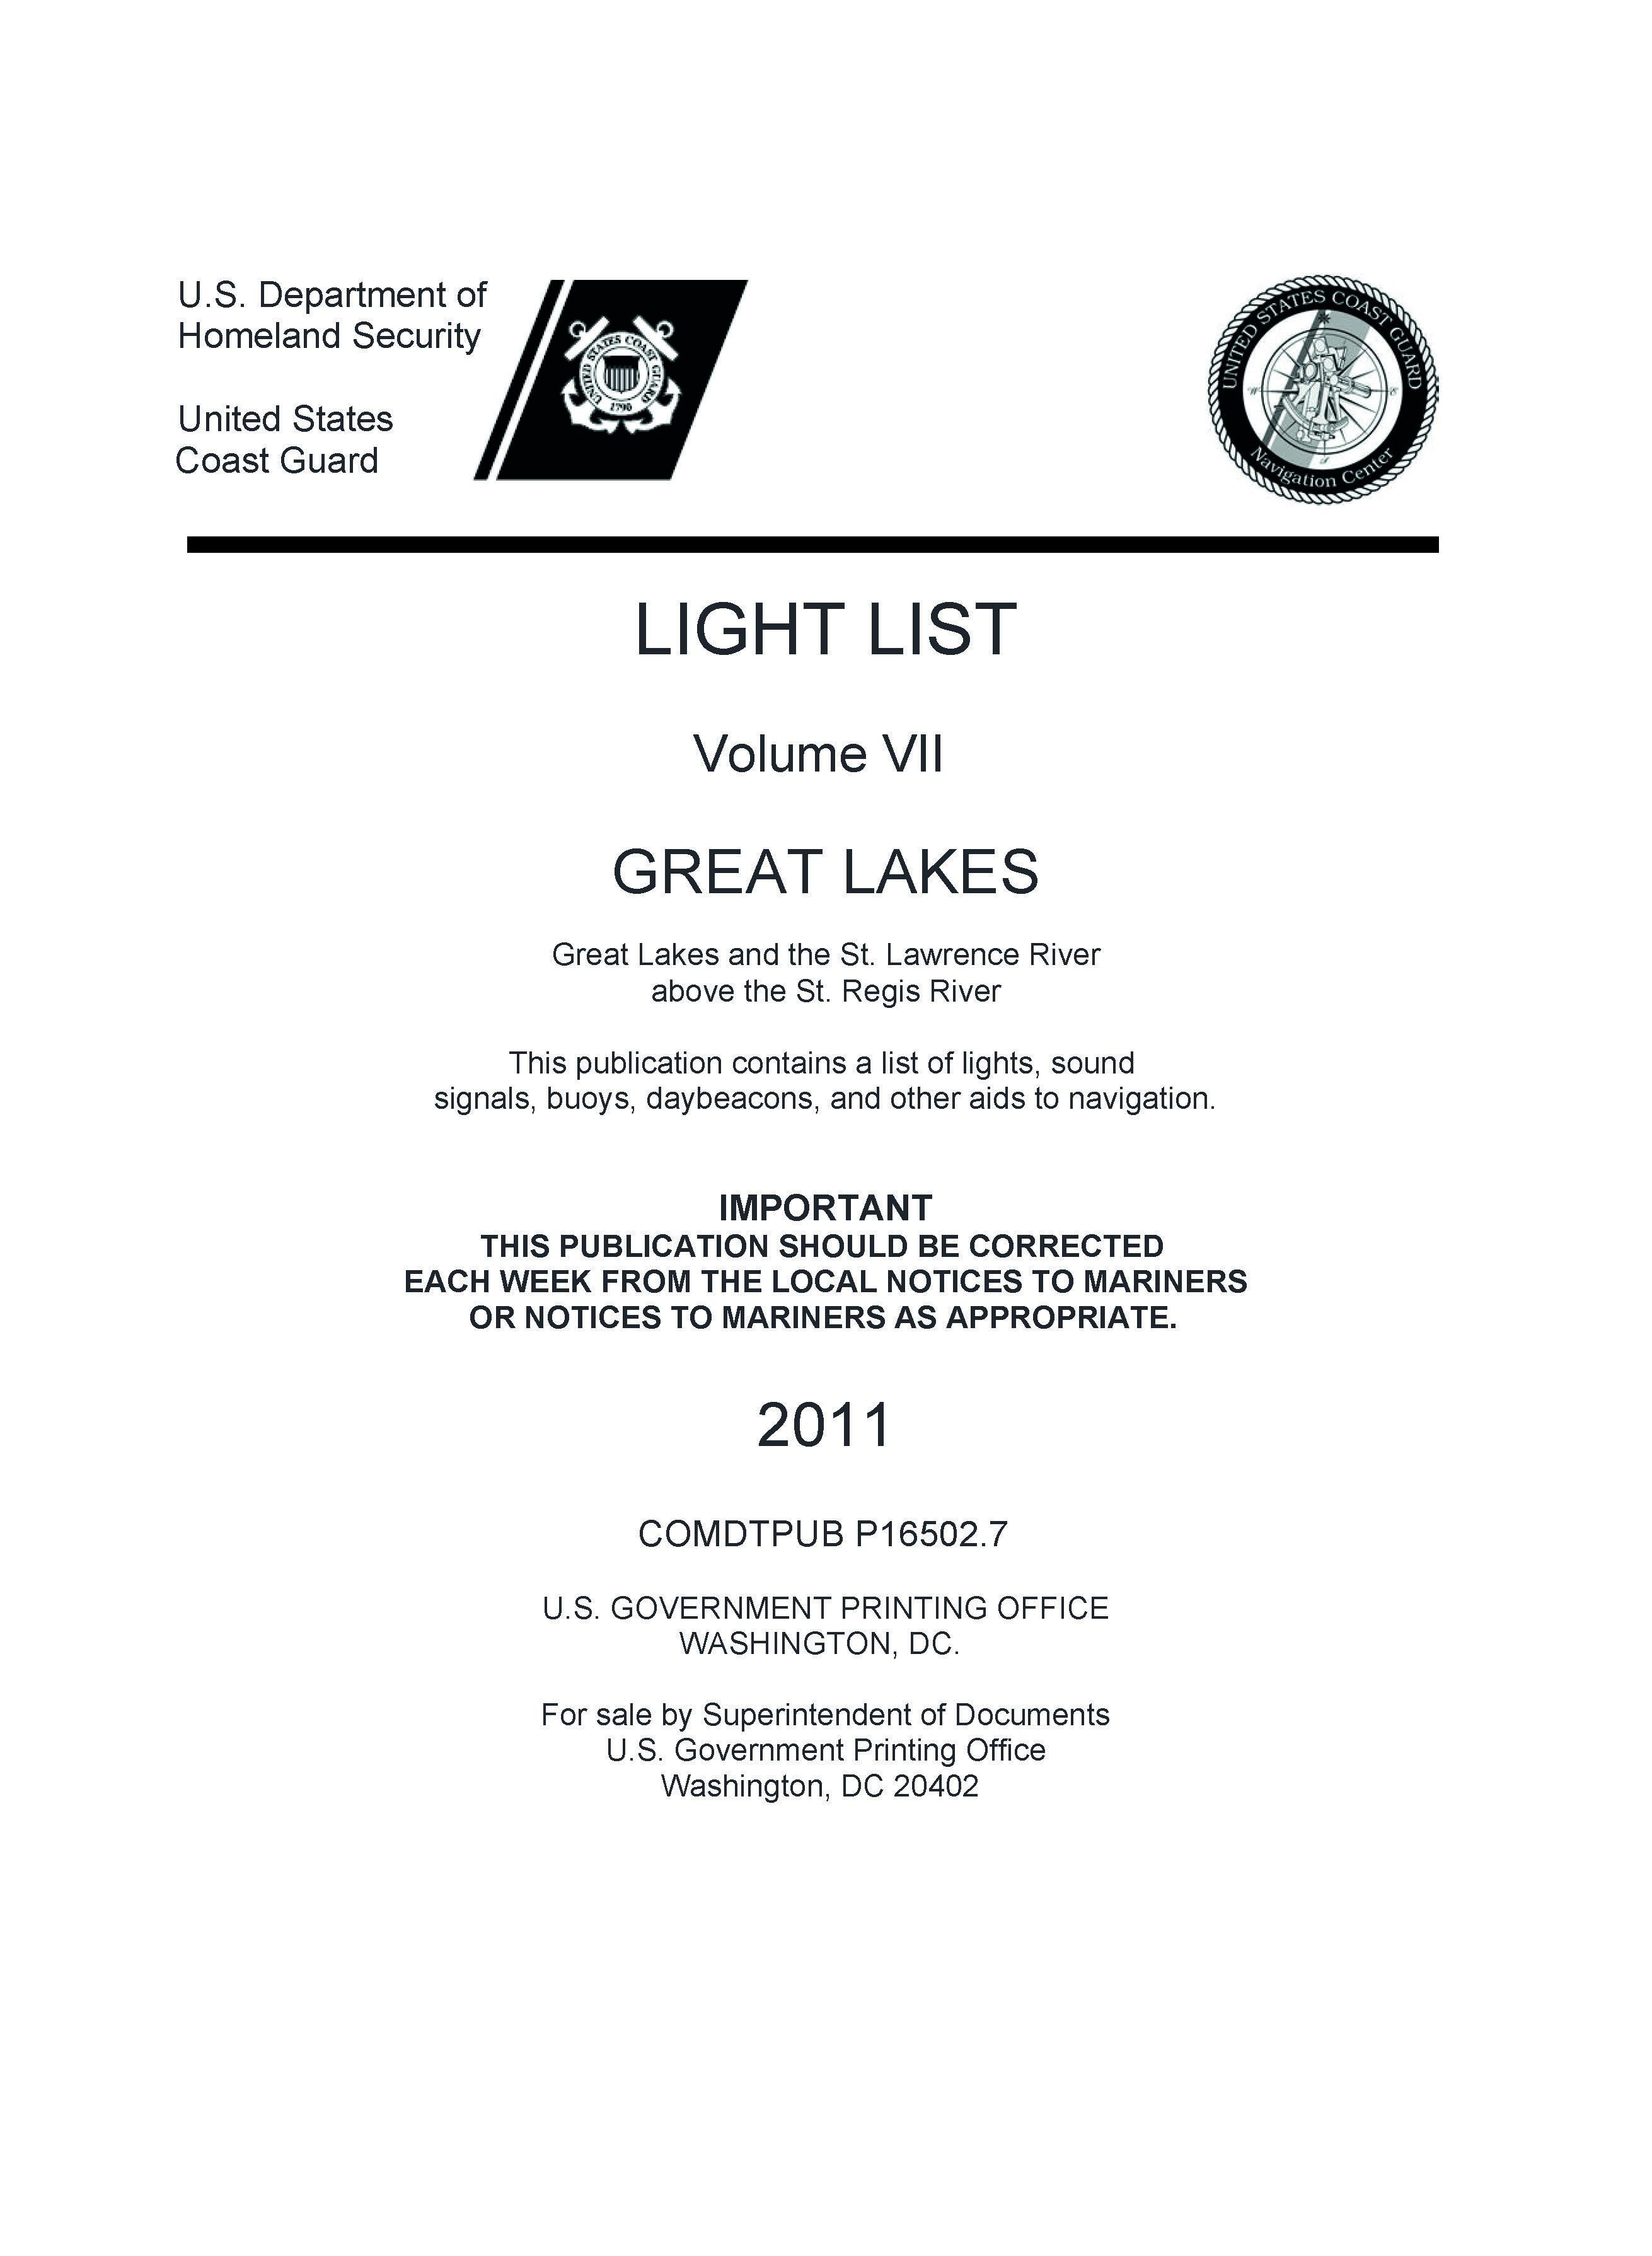 LIGHT LIST Volume 7 GREAT LAKES  Great Lakes and St Lawrence River above the St Regis River EB9781921936586